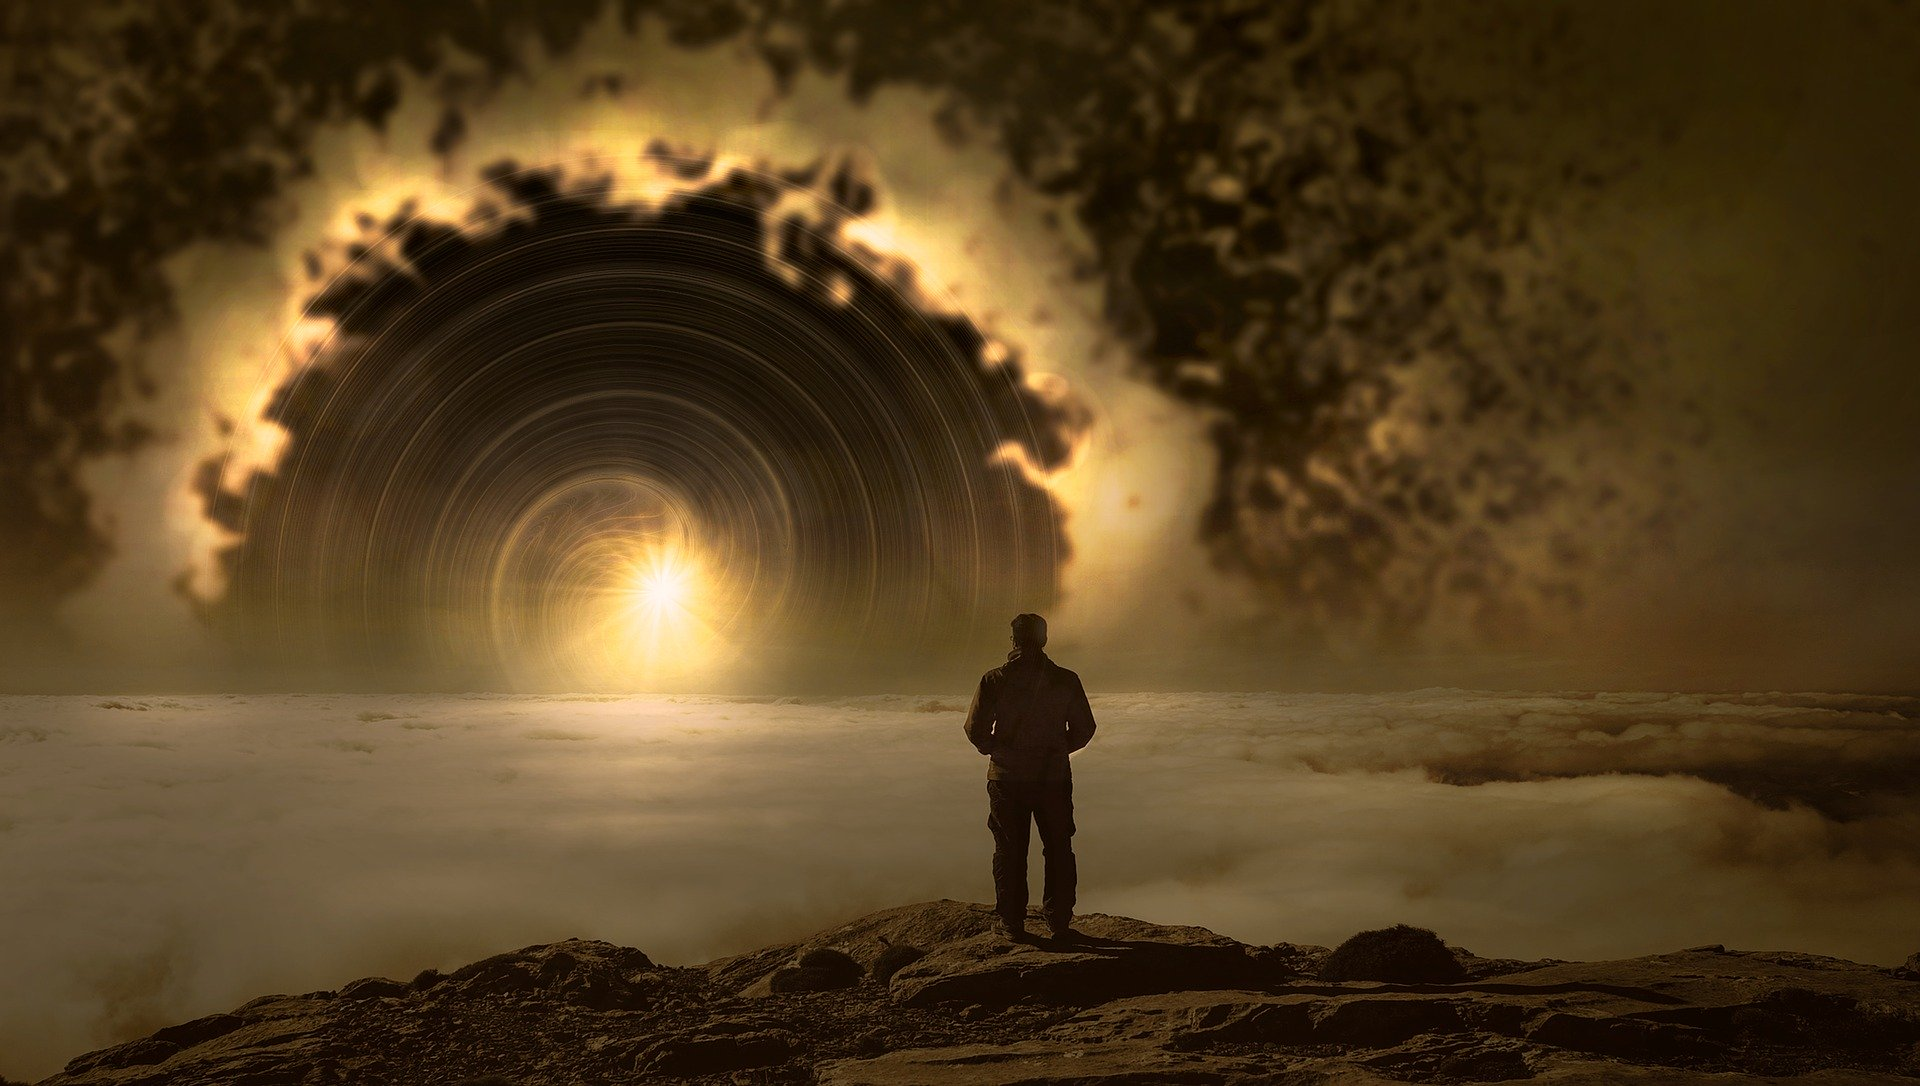 Is mysticism real?